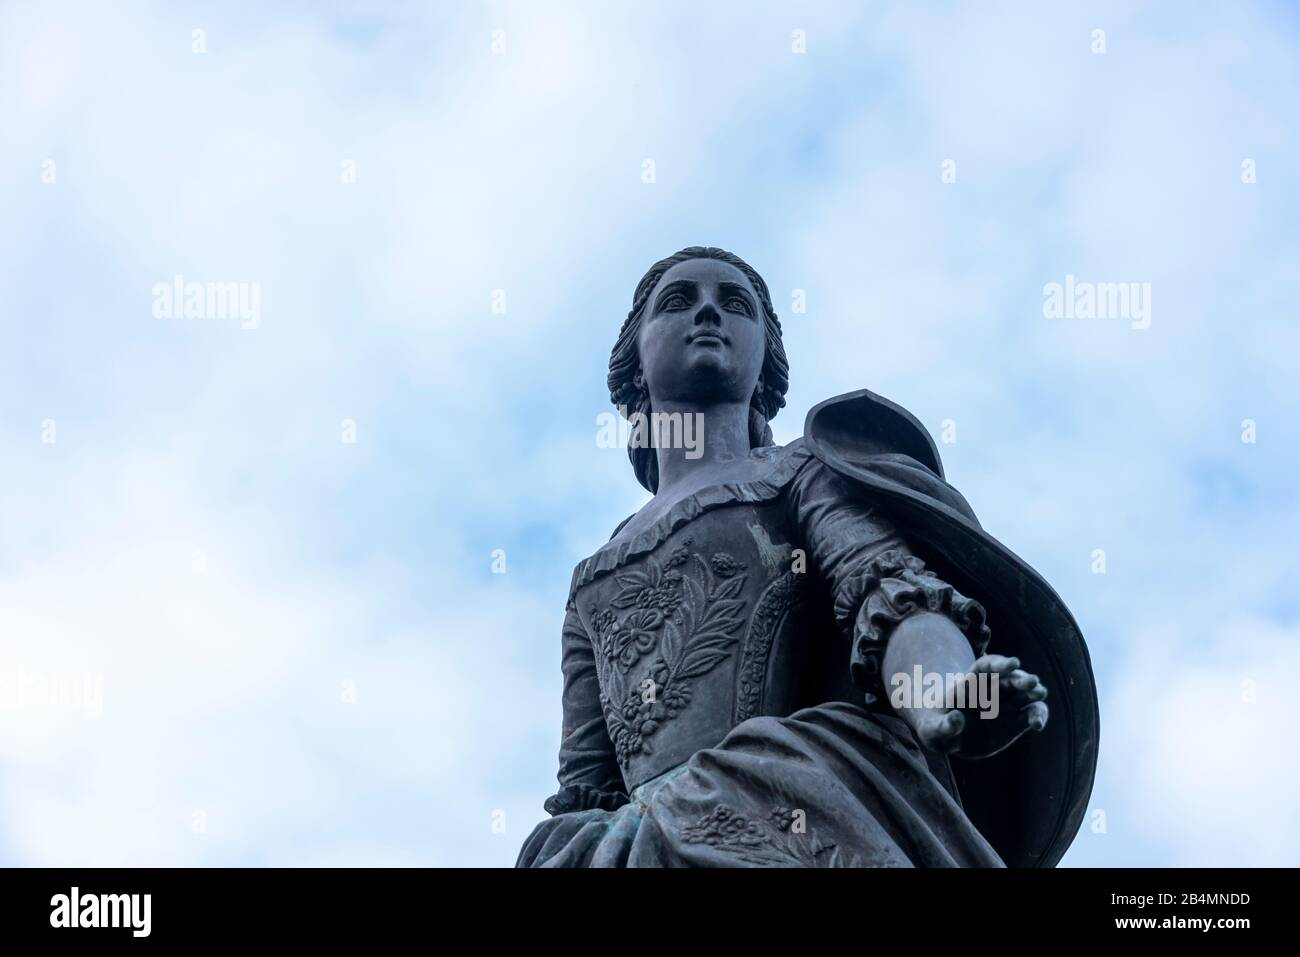 Germany, Saxony-Anhalt, Zerbst, view of the monument to Princess Sophie Auguste Friederike von Anhalt-Zerbst. She later became Tsarina Catherine II of Russia and went down in history as Catherine the Great. She lived in Zerbster Castle from 1742 to early 1744. Stock Photo